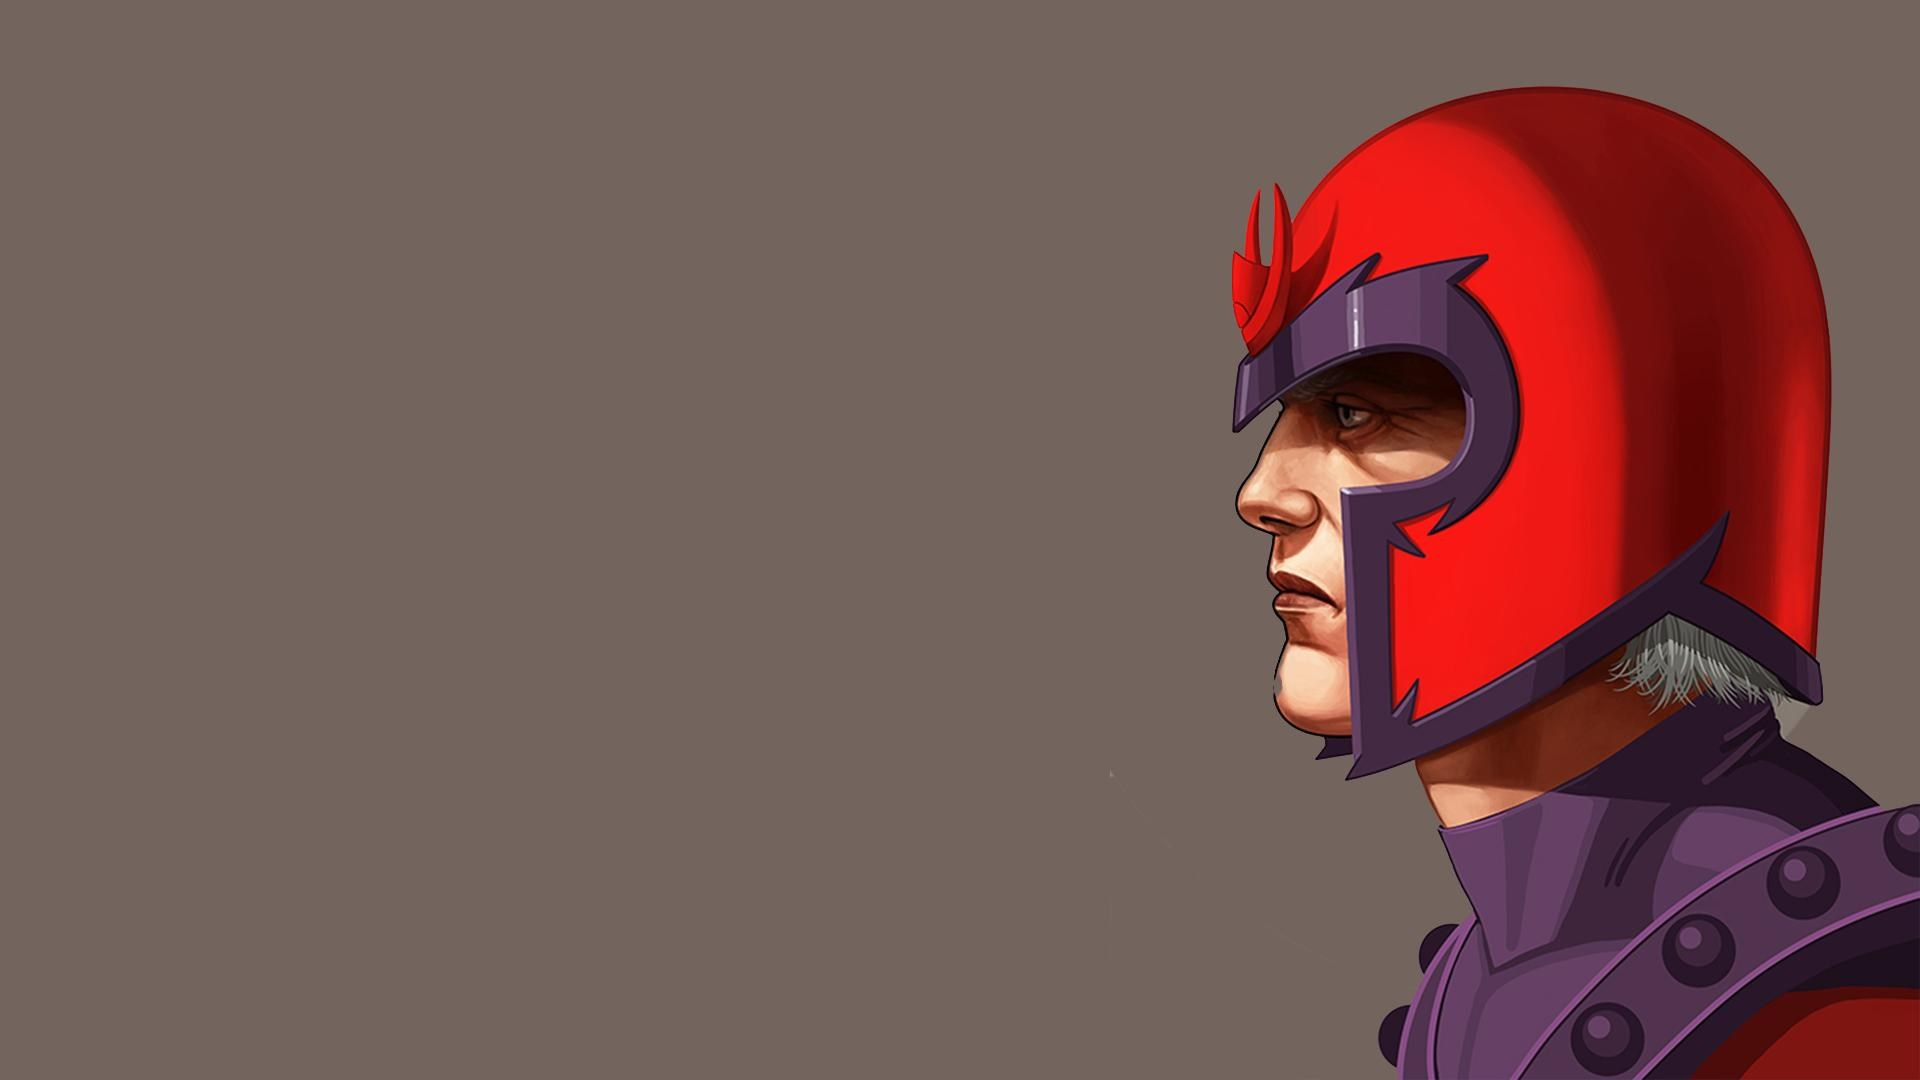 1920x1080 - Magneto Wallpapers 24